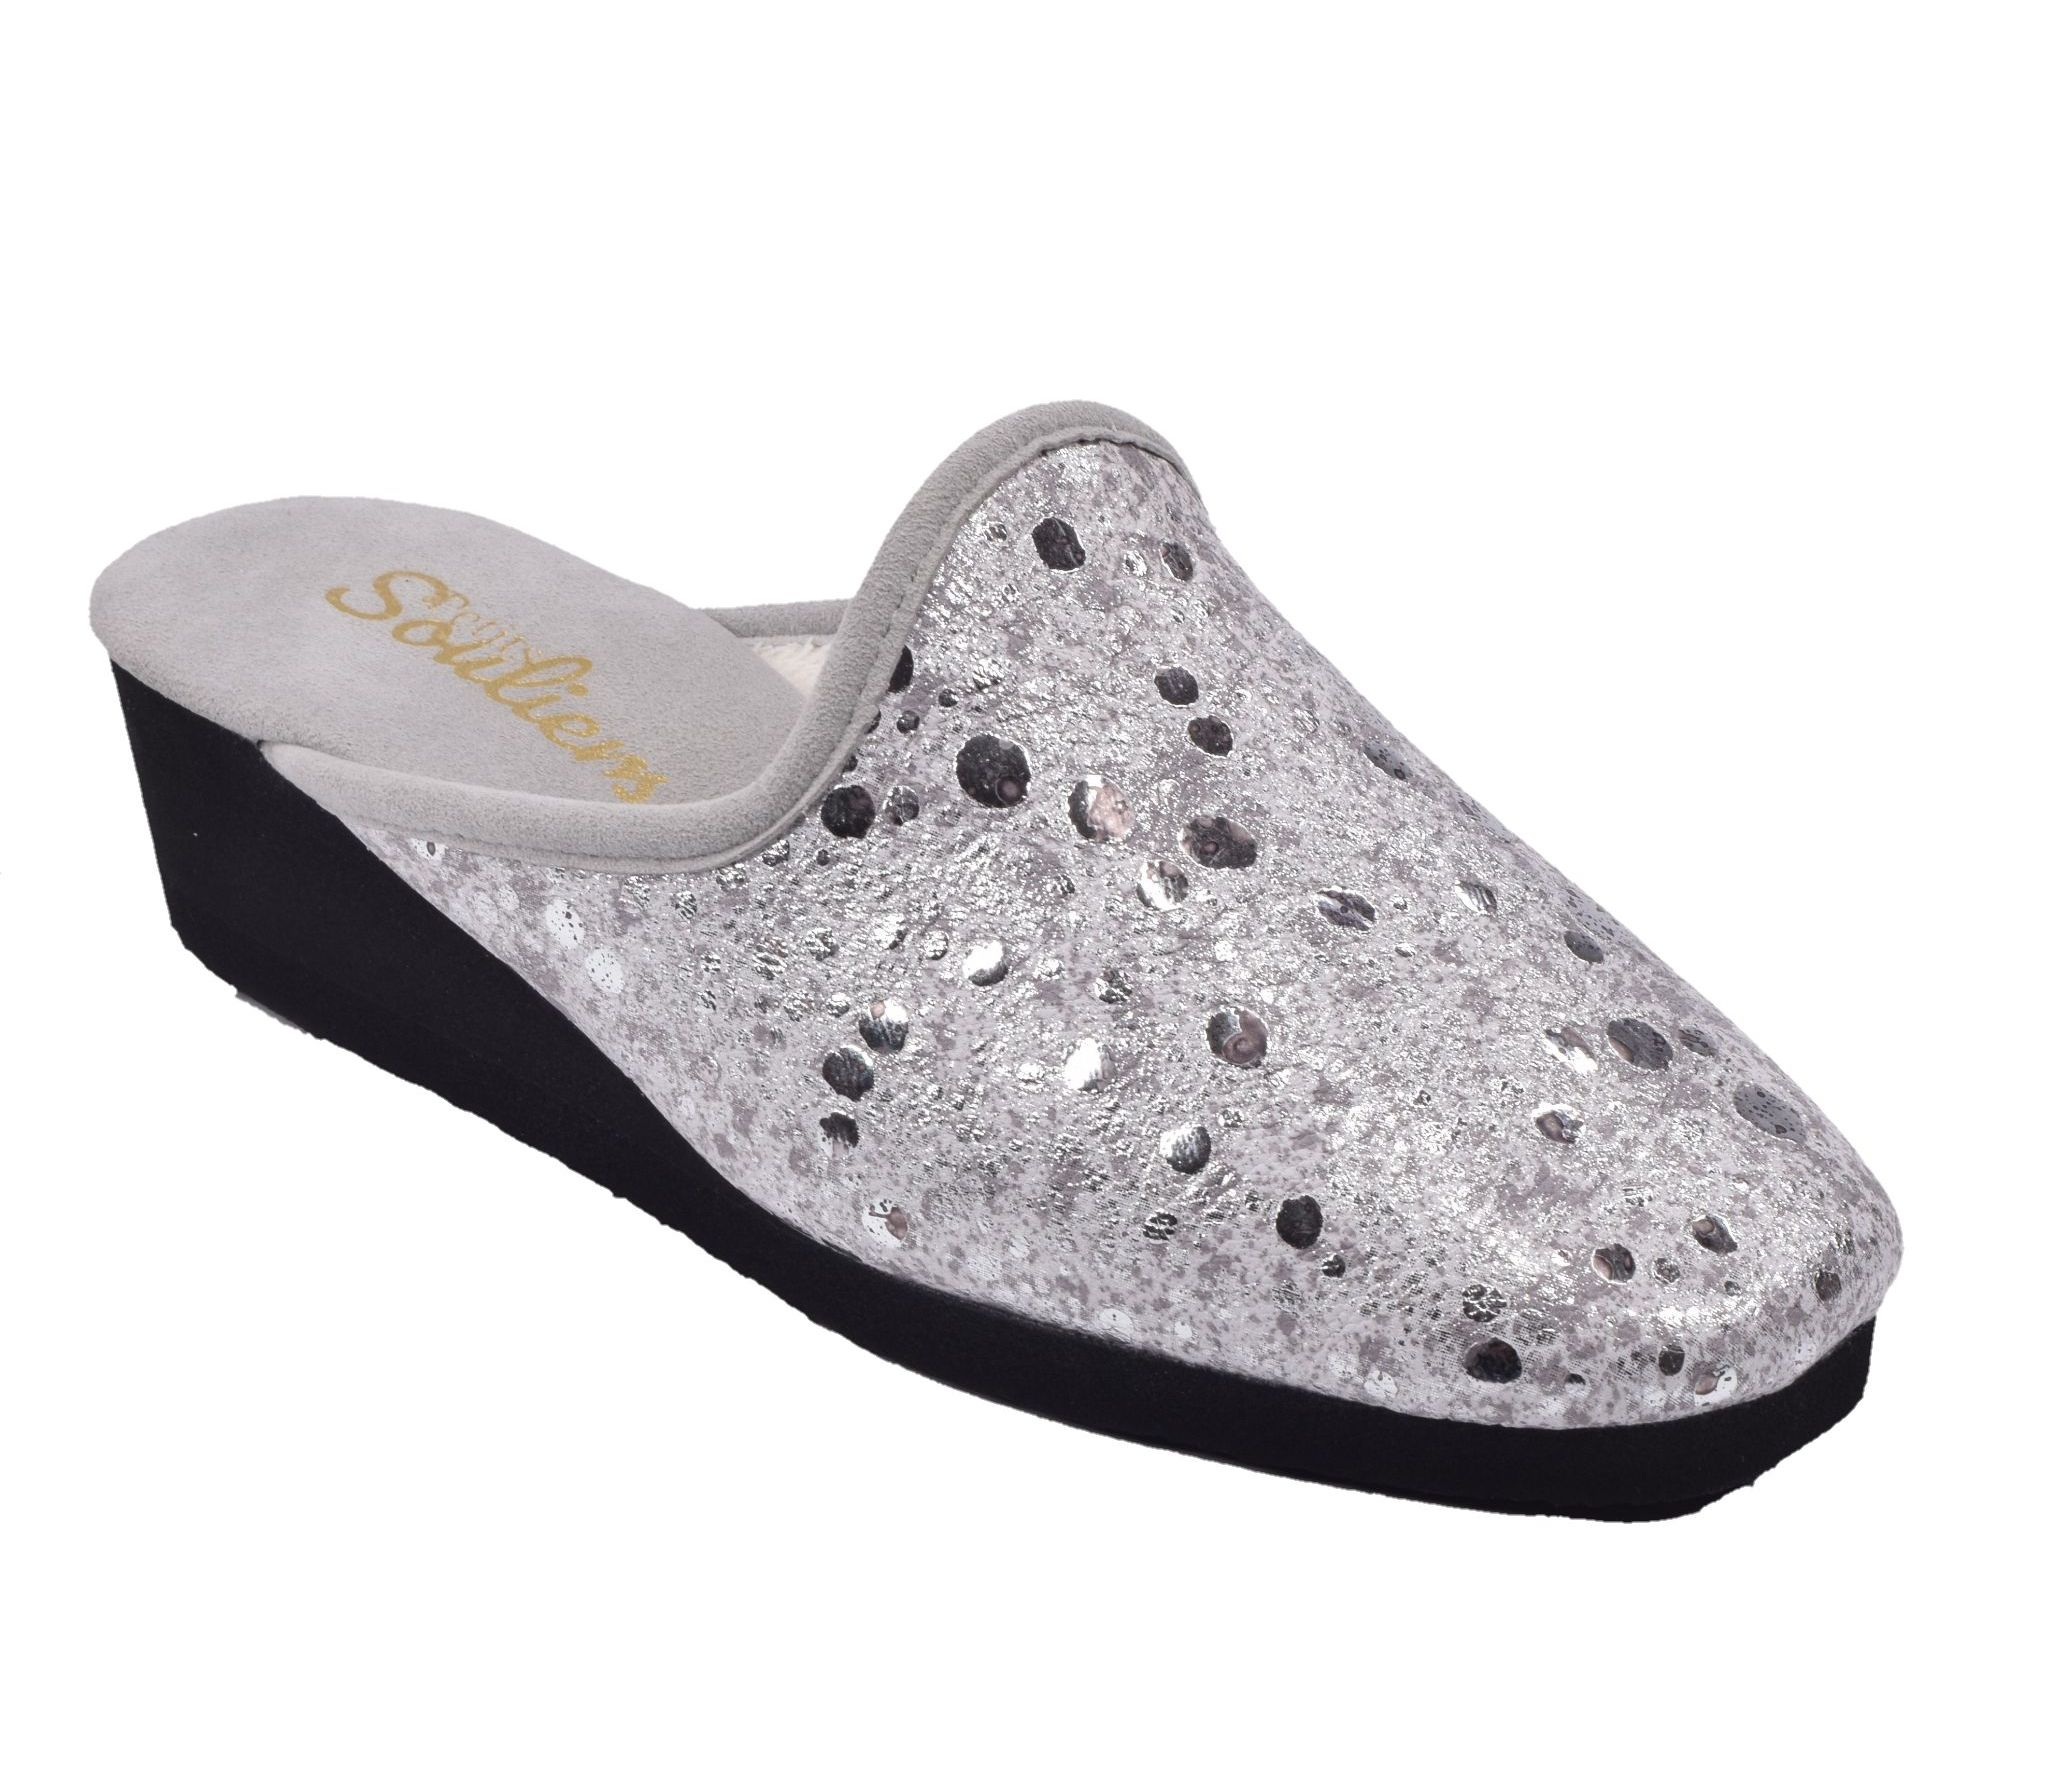 Chaussons mules petites tailles